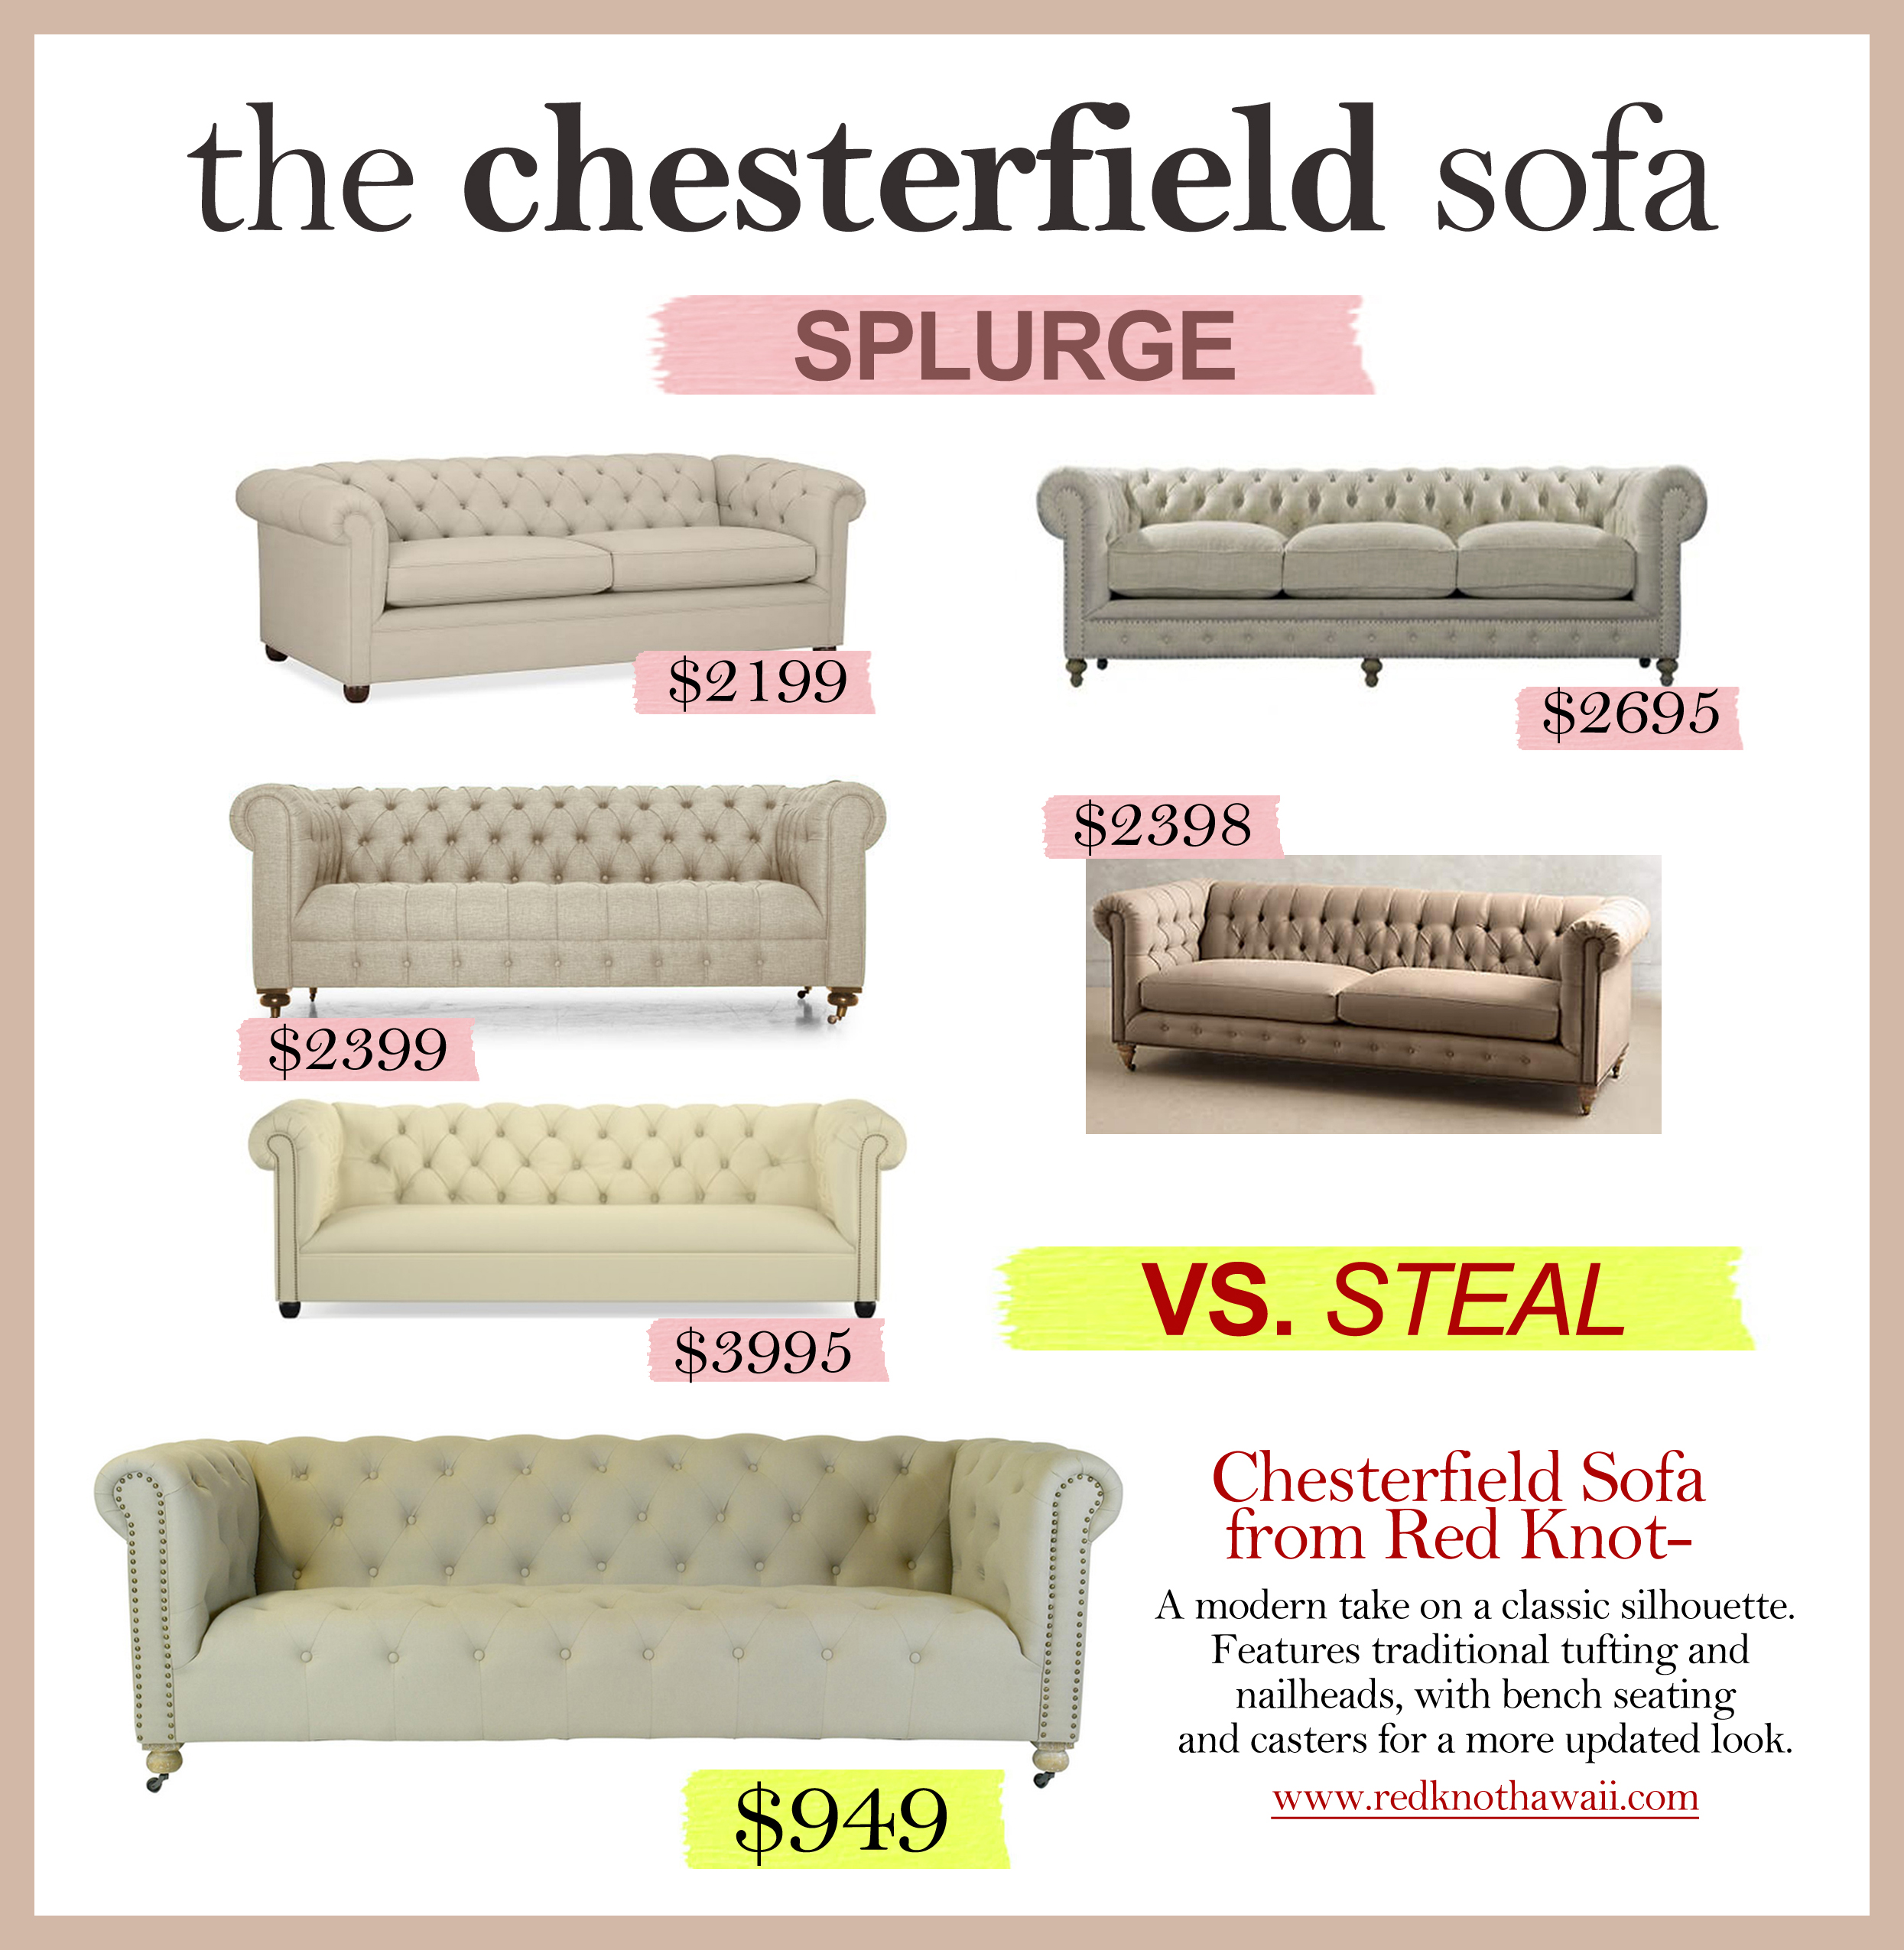 sofa vs loveseat Brokeasshome com